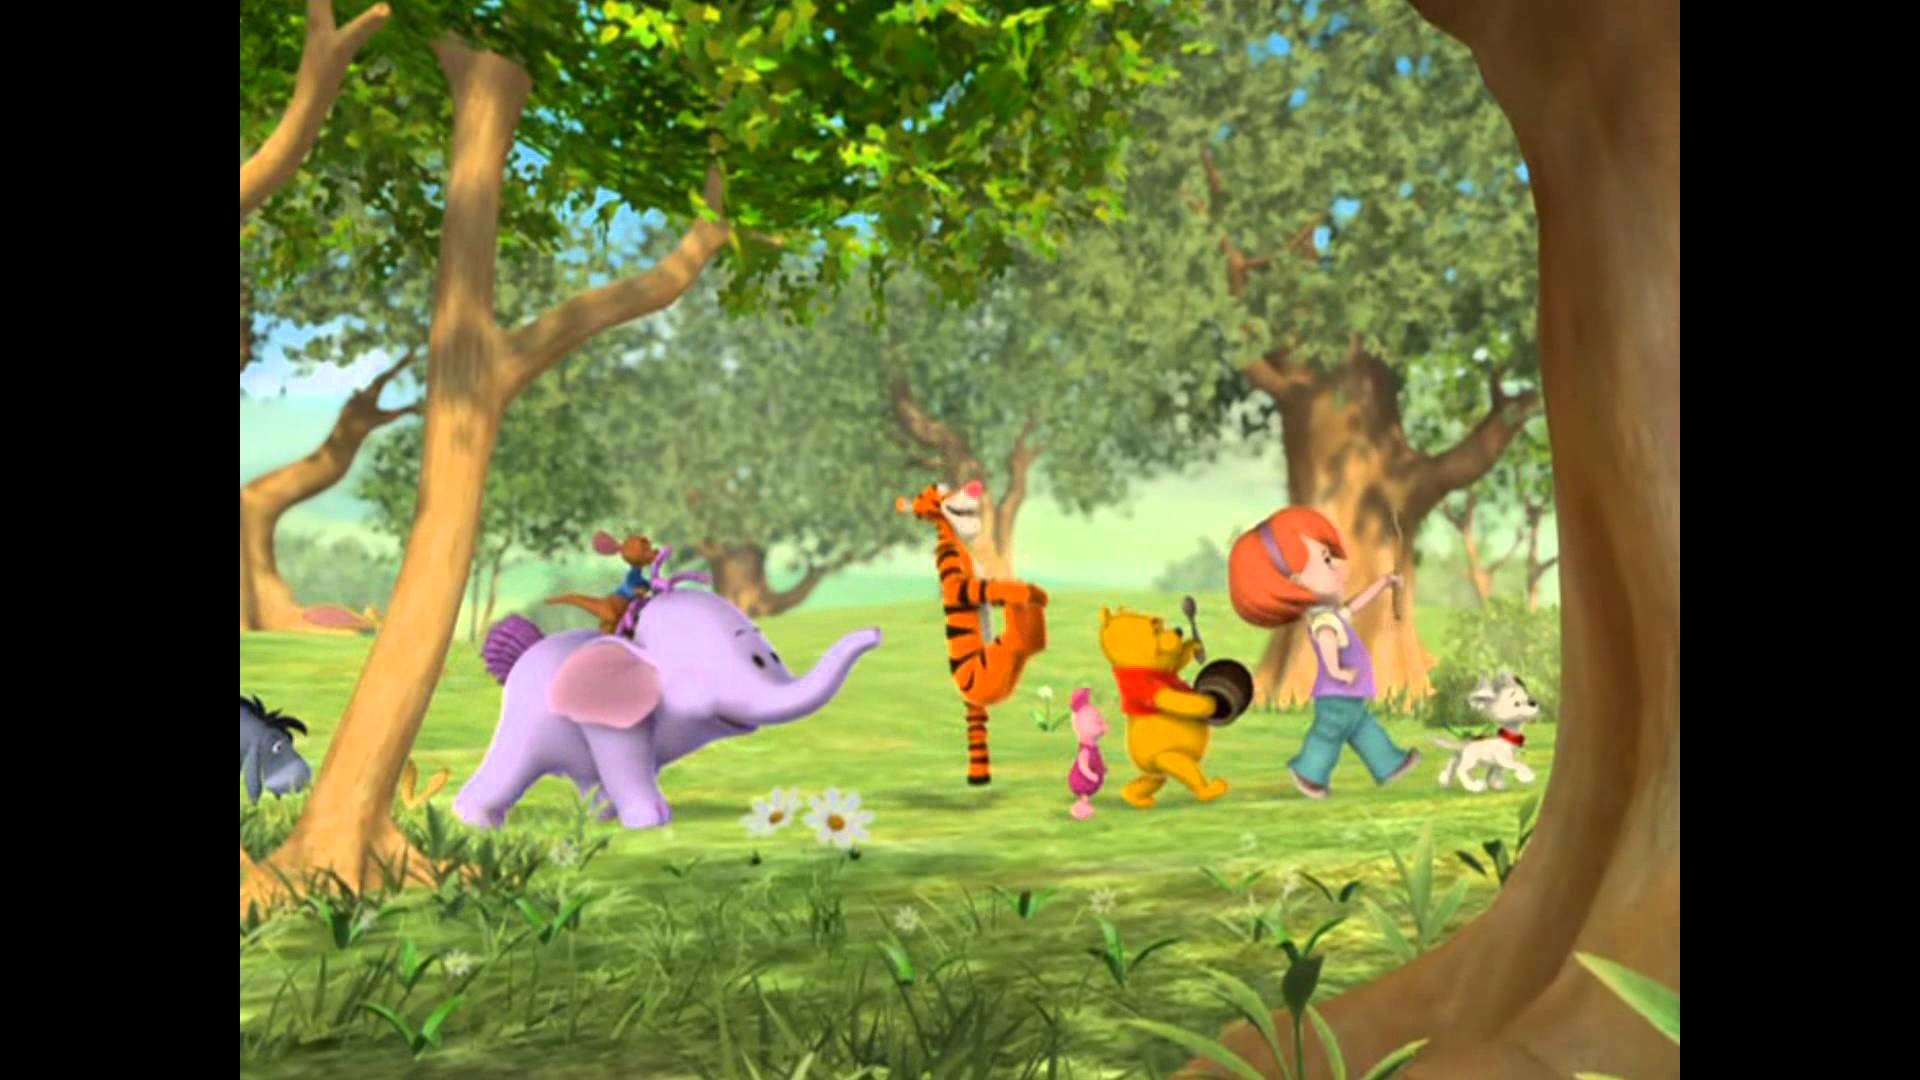 My friends tigger pooh wallpapers 65 background pictures 1920x1080 winnie the pooh and friends wallpaper winnie the pooh hd wallpaper background 18247 wallpaper wall height download altavistaventures Images